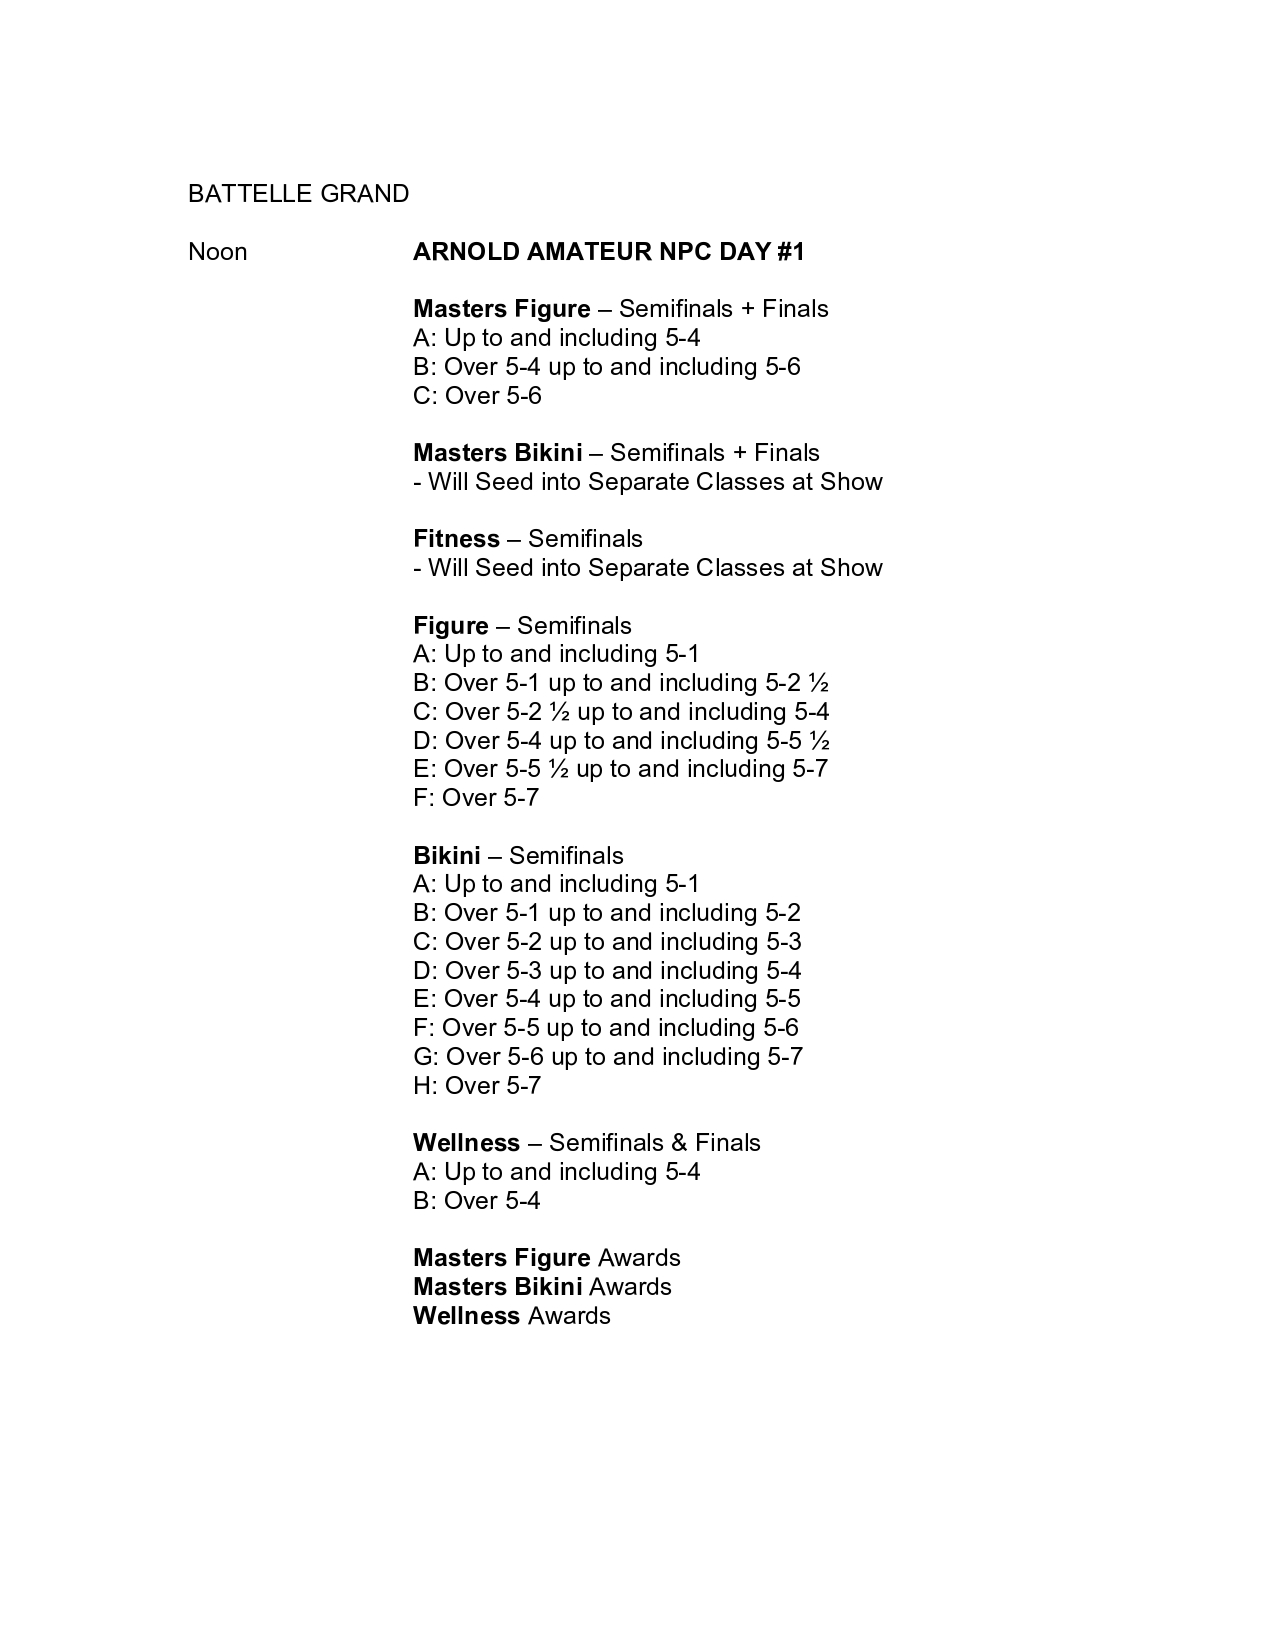 2021-Arnold-Amateur-Competitor-Information-8.3.21_page-0009